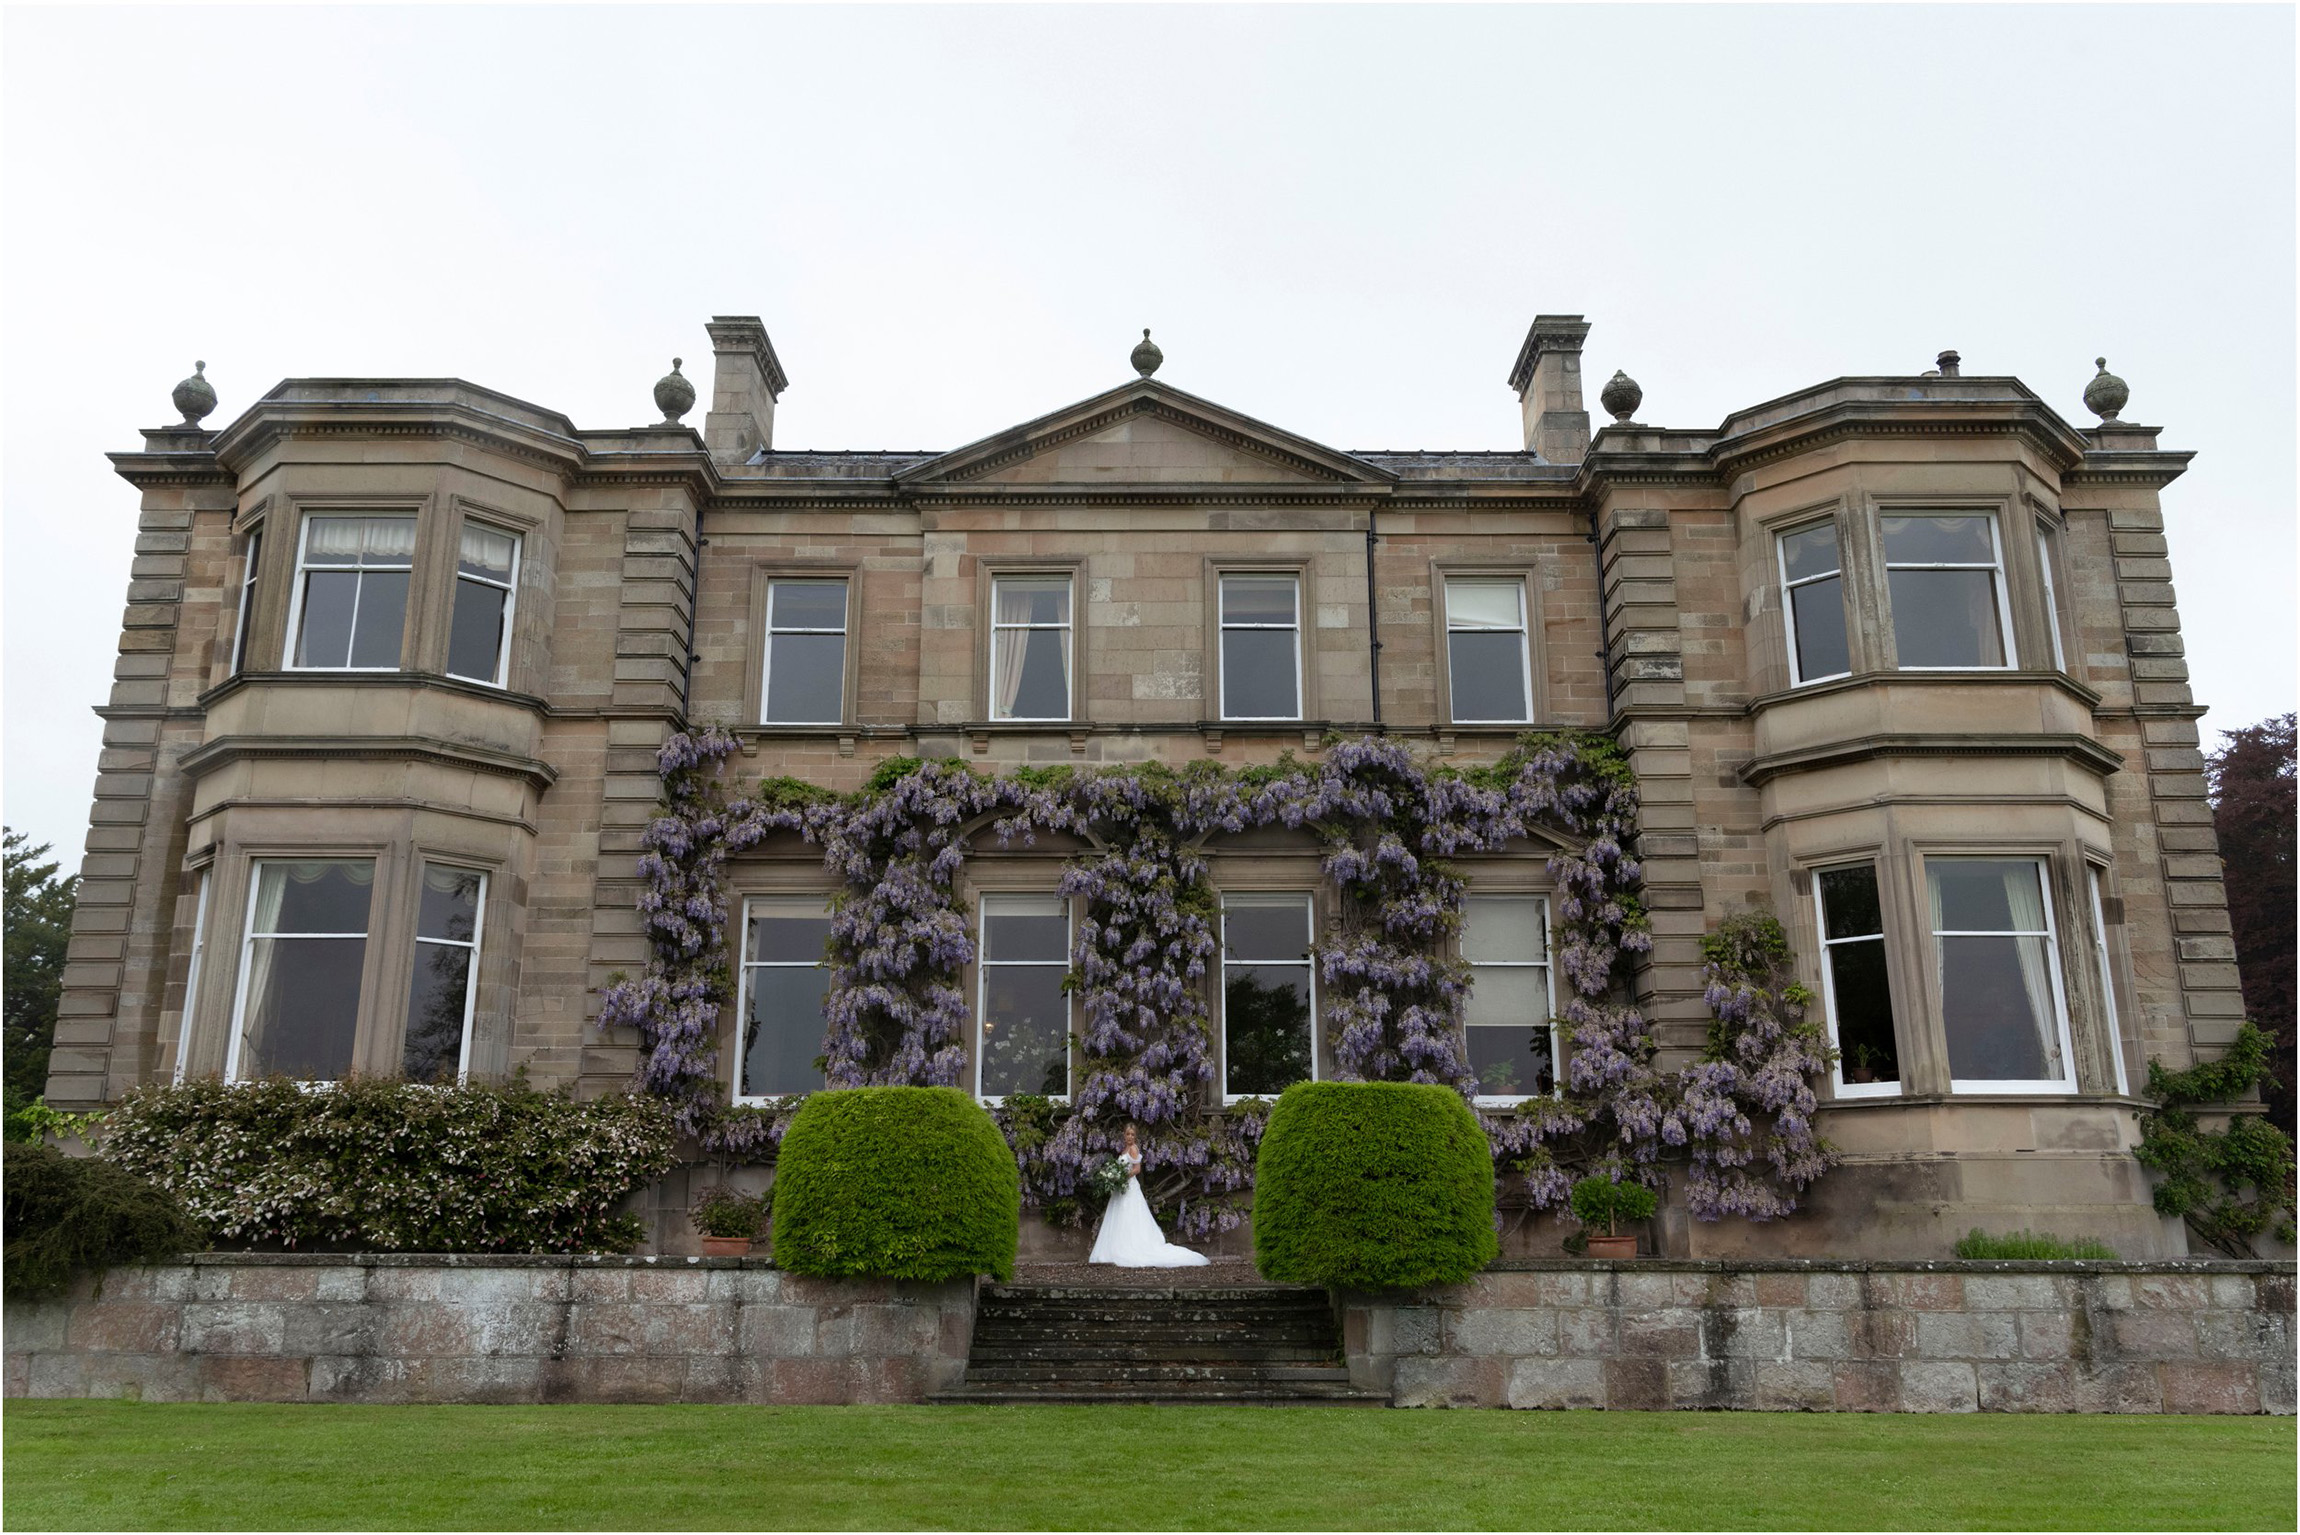 ©FianderFoto_Scotland Wedding Photographer_Errol Park Estate_Janine_Karl_110.jpg